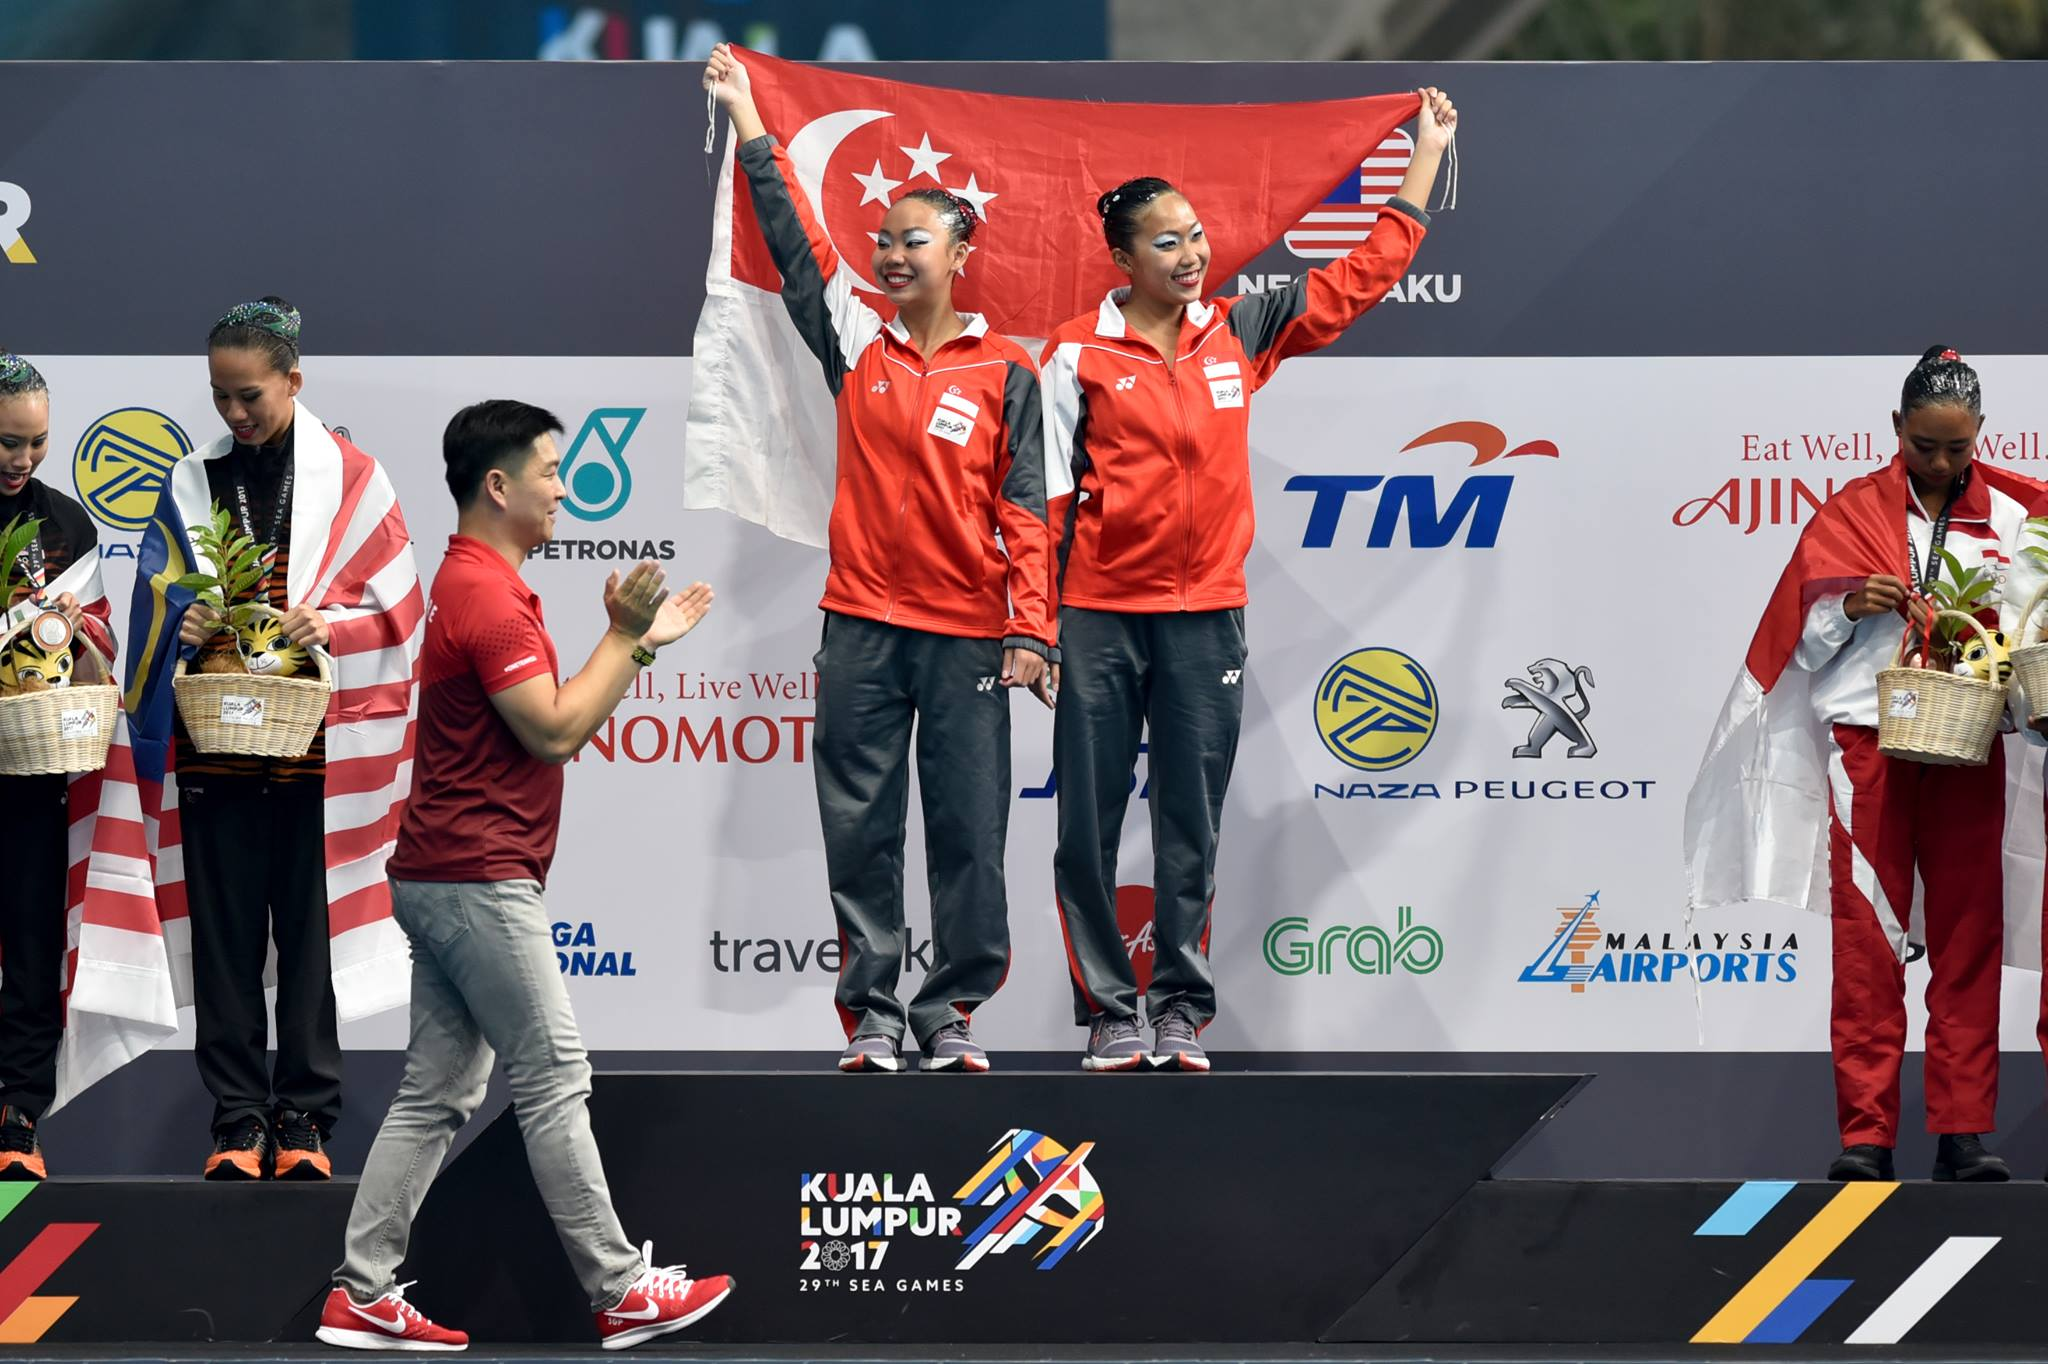 SEA Games 29 officially opens in Malaysia